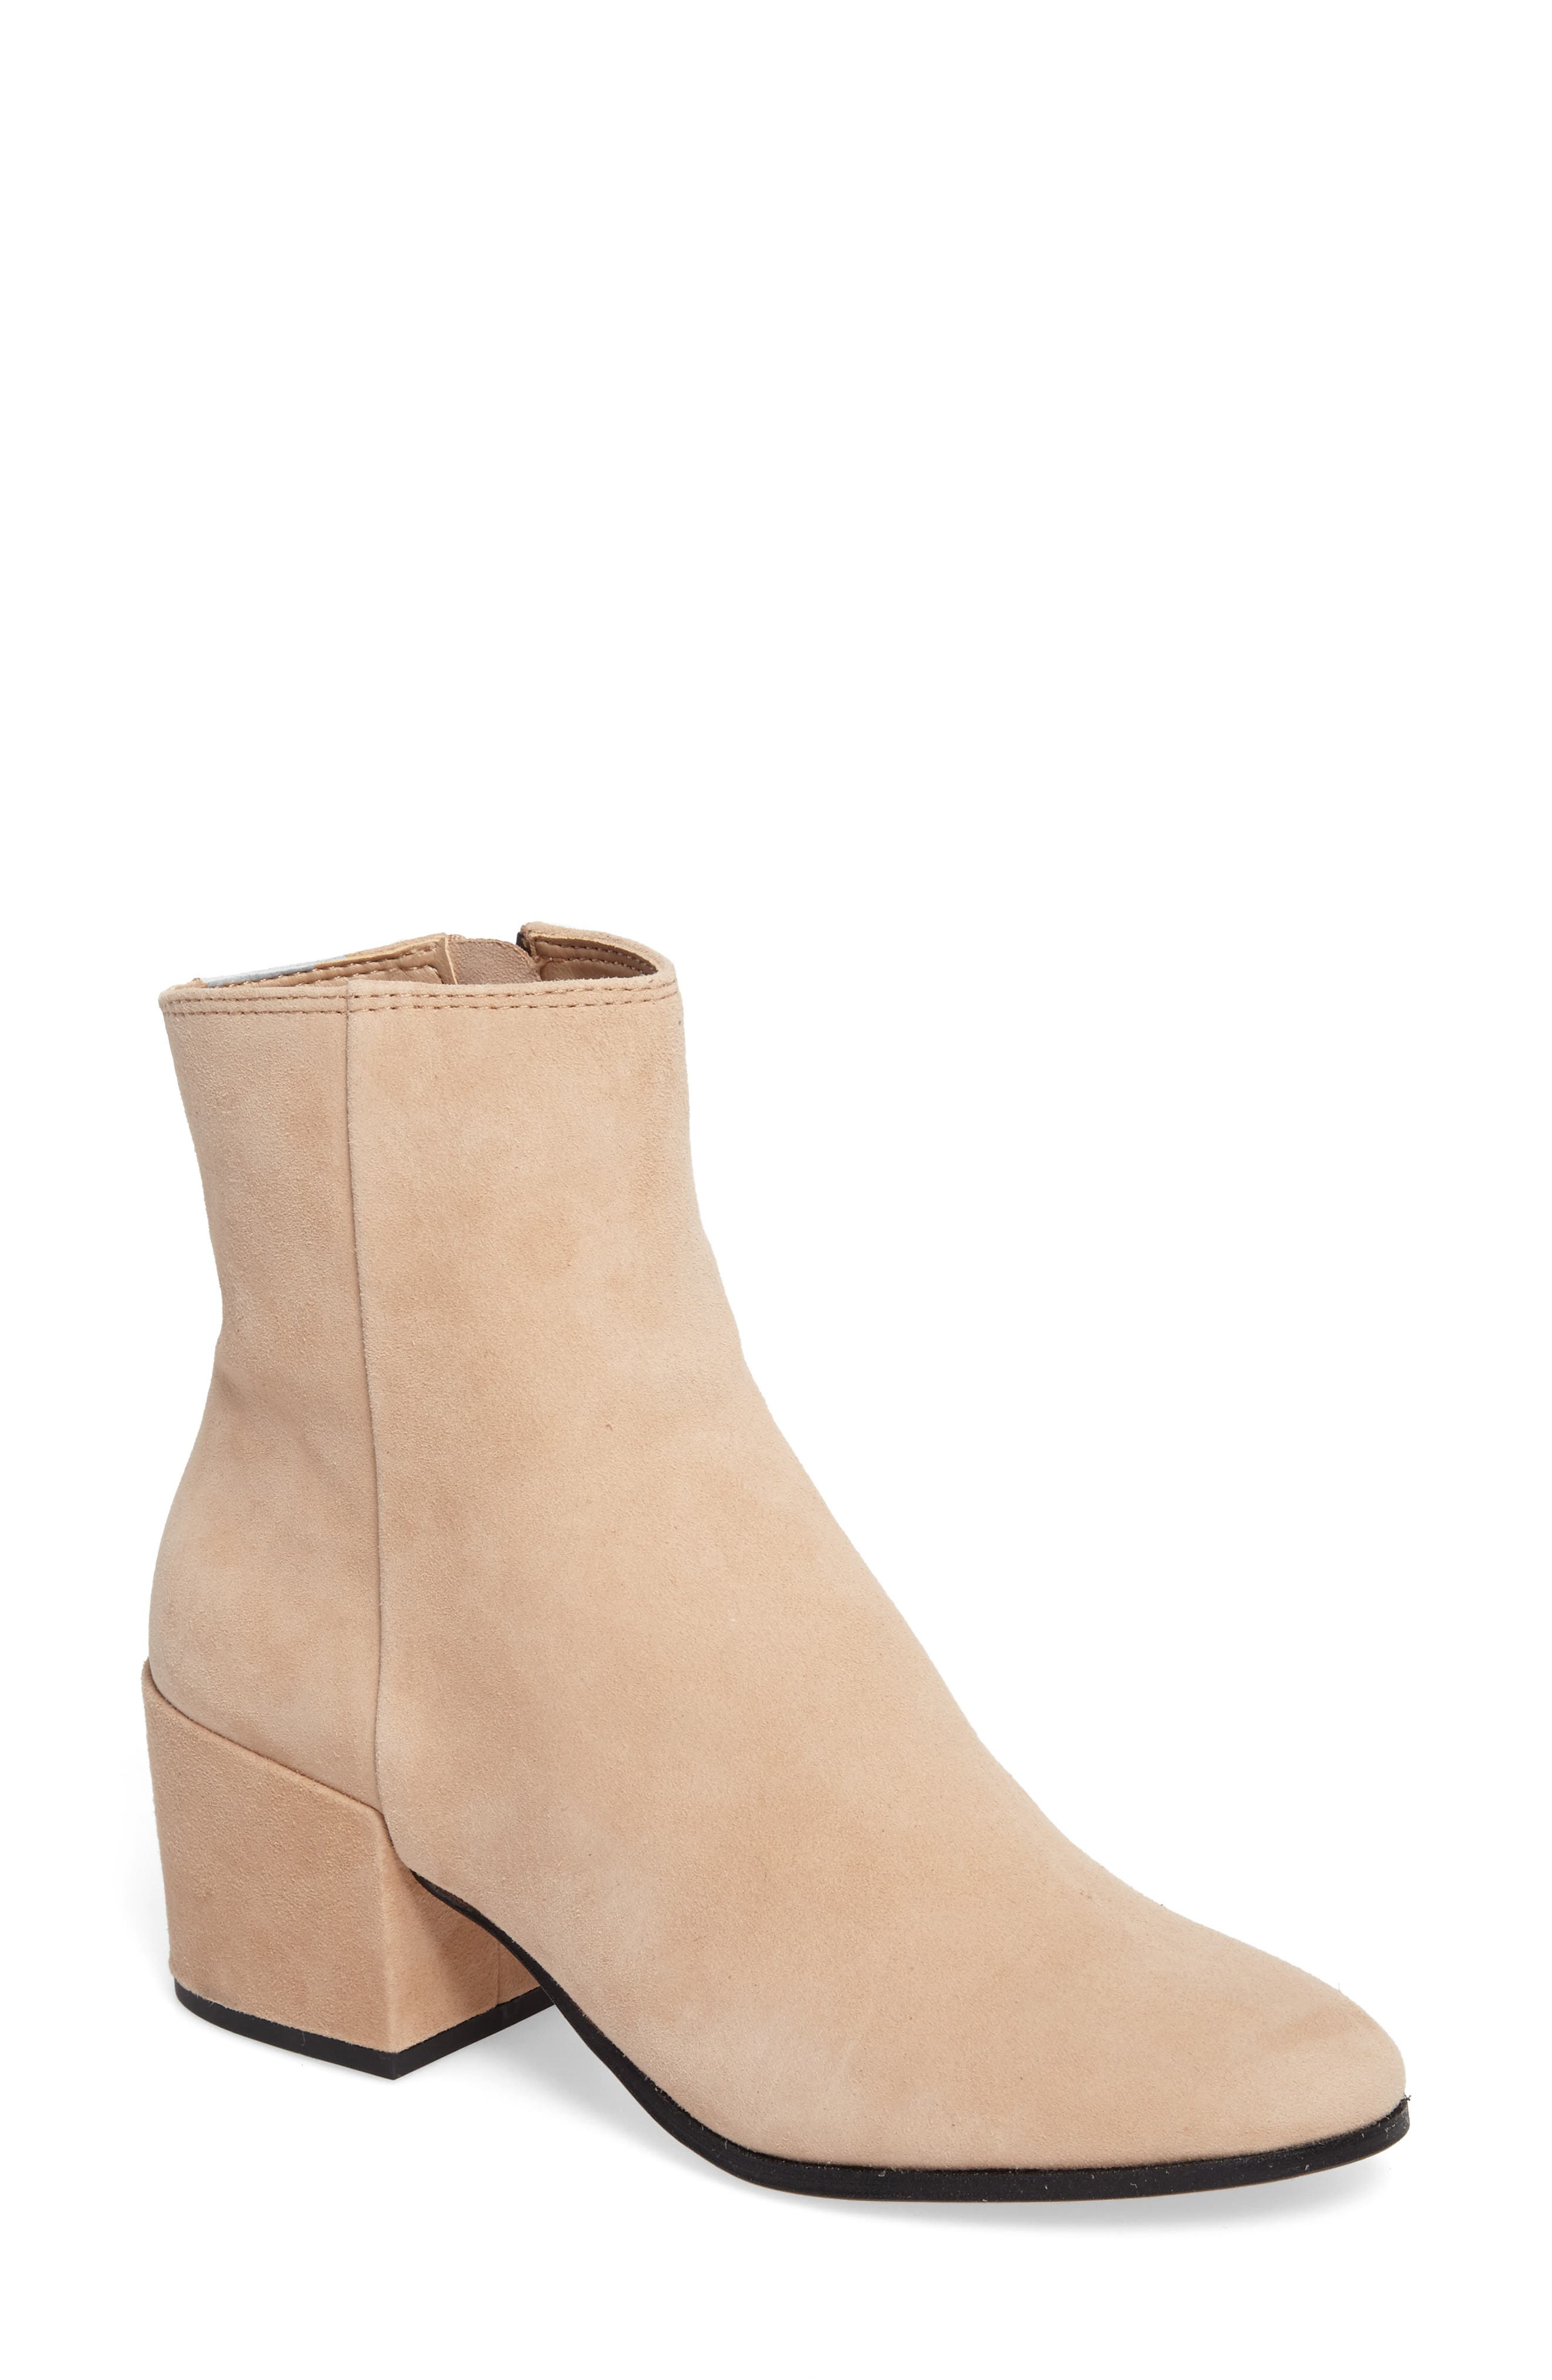 Alternate Image 1 Selected - Dolce Vita Maude Block Heel Bootie (Women)